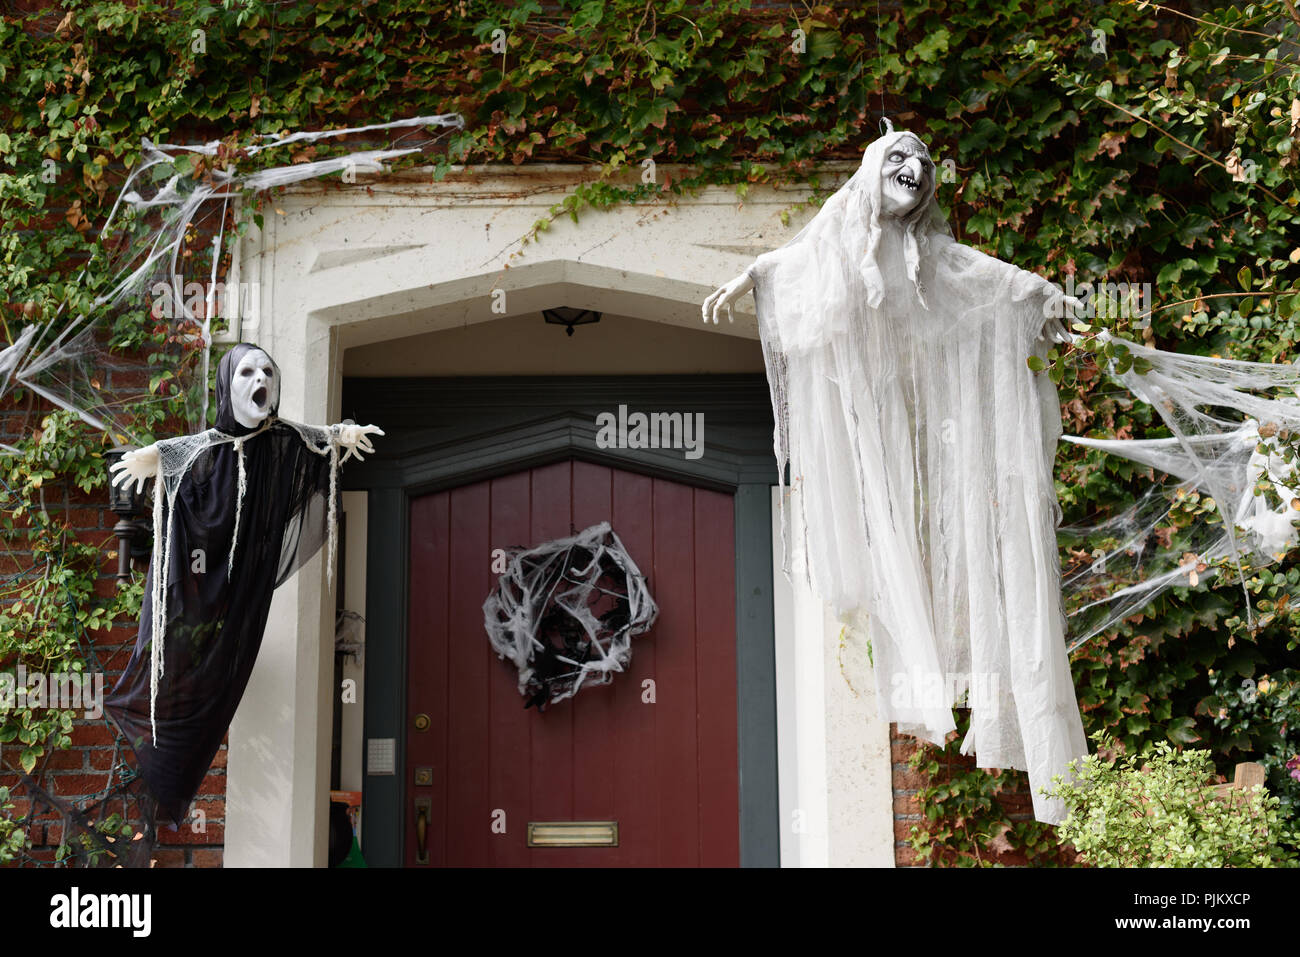 Halloween In Front Of House Decorations Stock Photo 218026054 Alamy